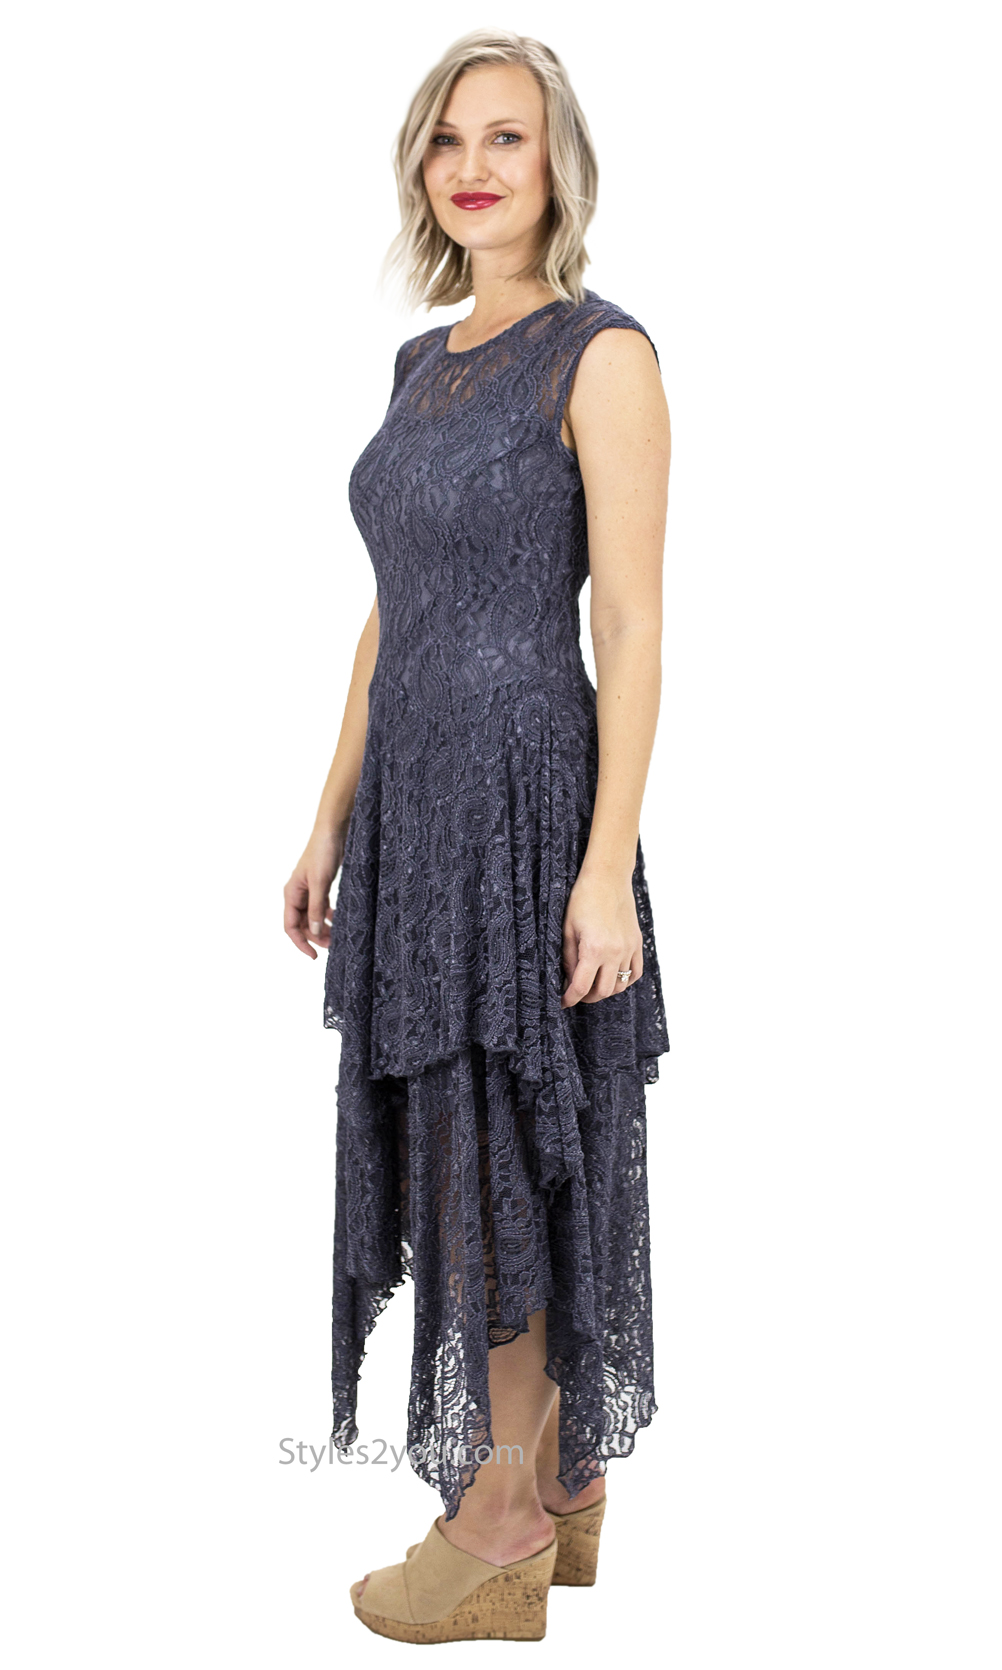 Abigail Layered All Lace Dress With Slip In Gray Verducci Dress ...